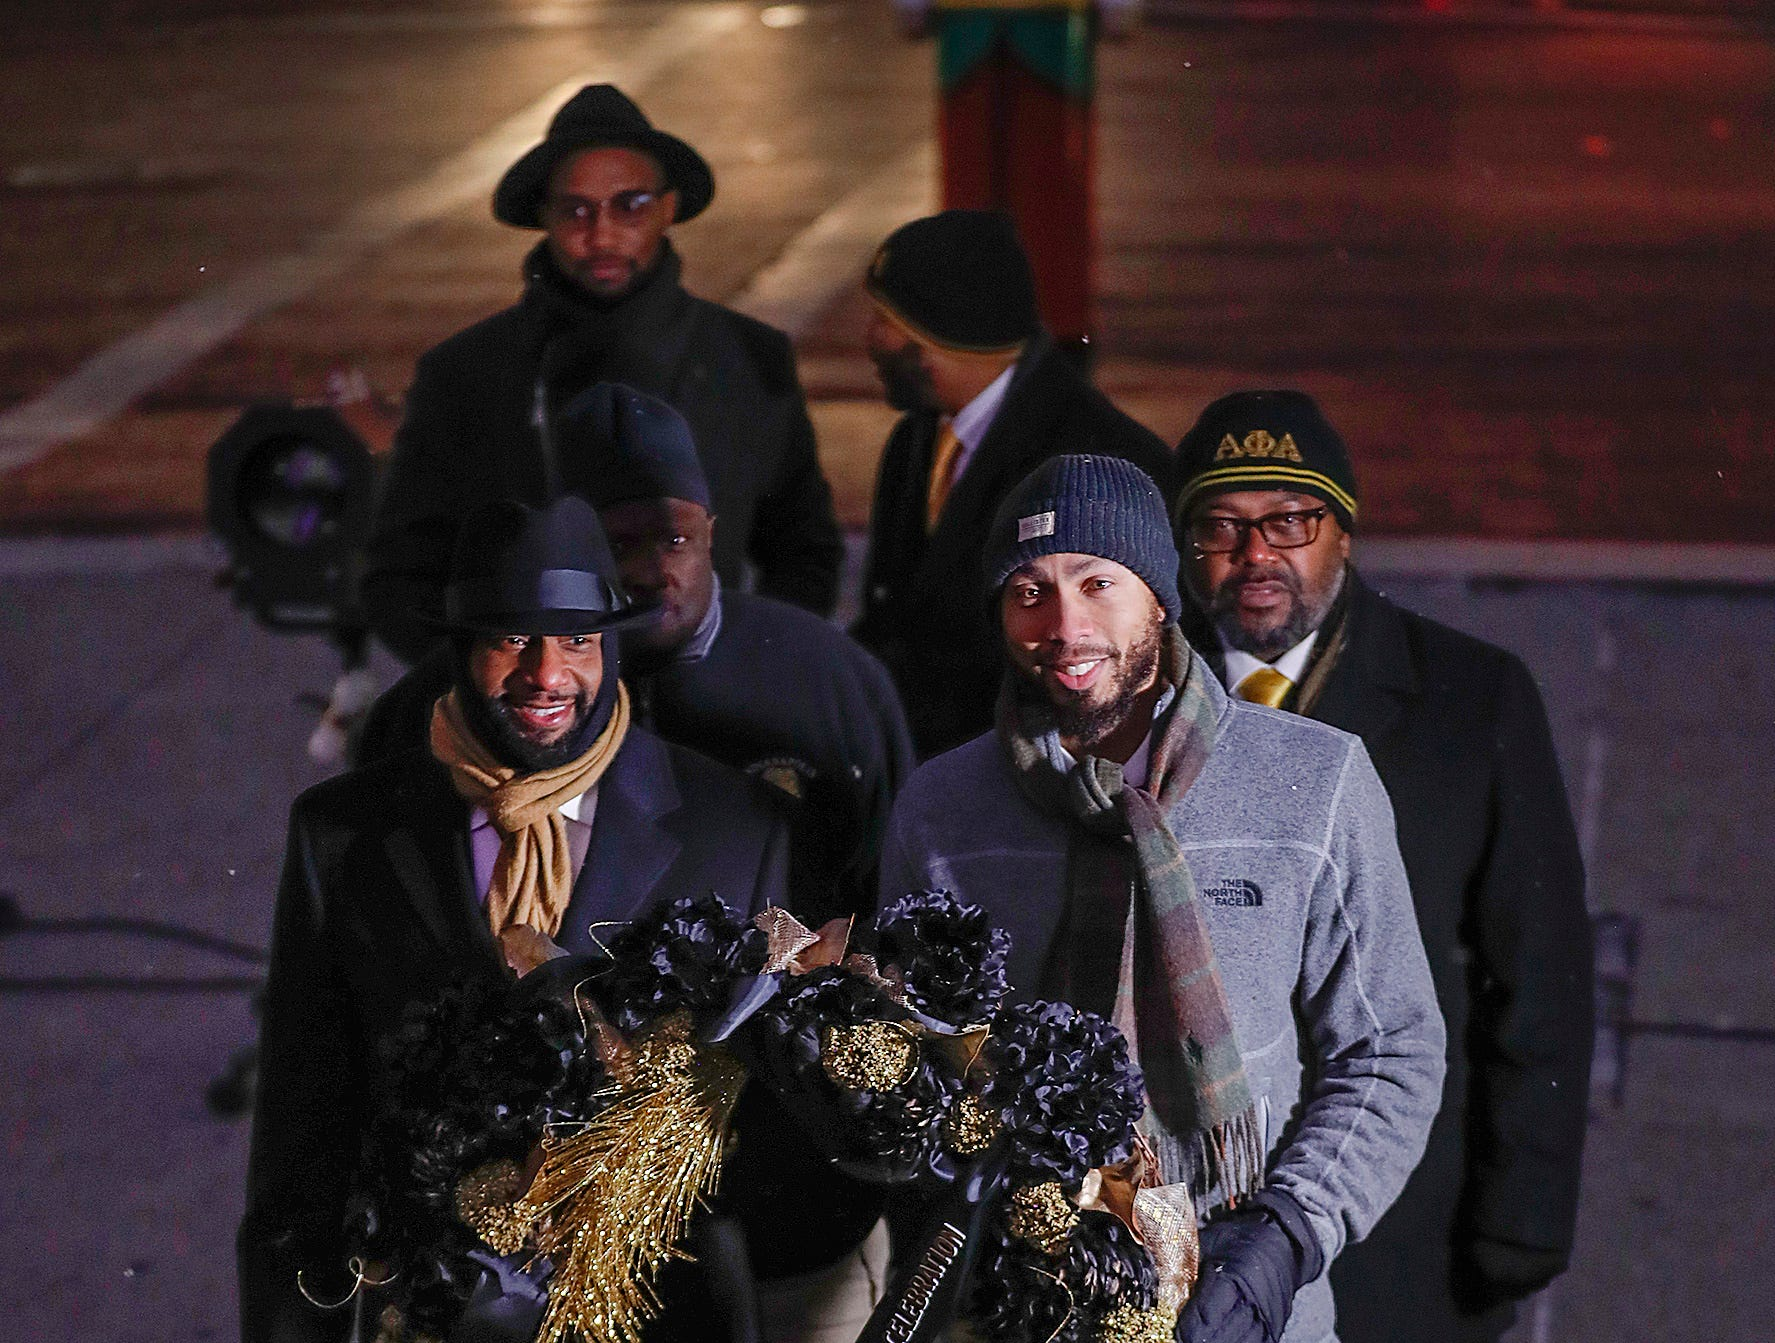 Members of the Alpha Phi Alpha carry the wreath as the Indiana Civil Rights Commission hosted a commemorative Wreath Placing Ceremony at the Indiana War Memorial on Wednesday, Jan. 9, 2019.